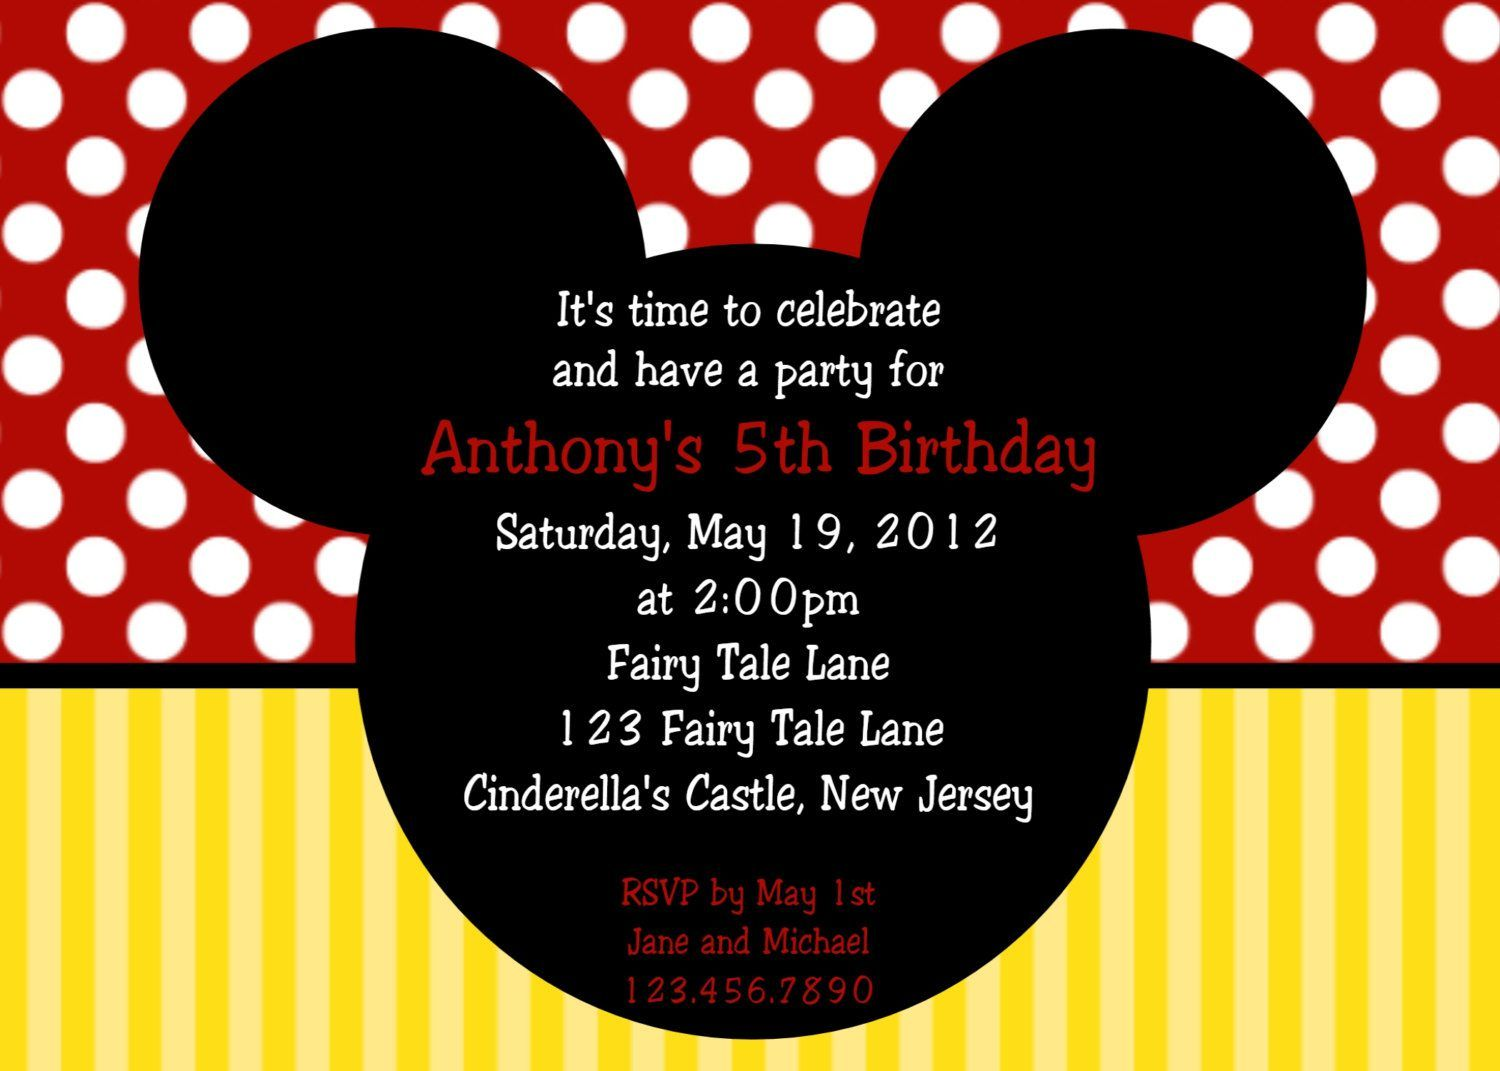 Mickeymousebirthdayinvitationcardtemplate Birthday - Mickey mouse 1st birthday invitations template